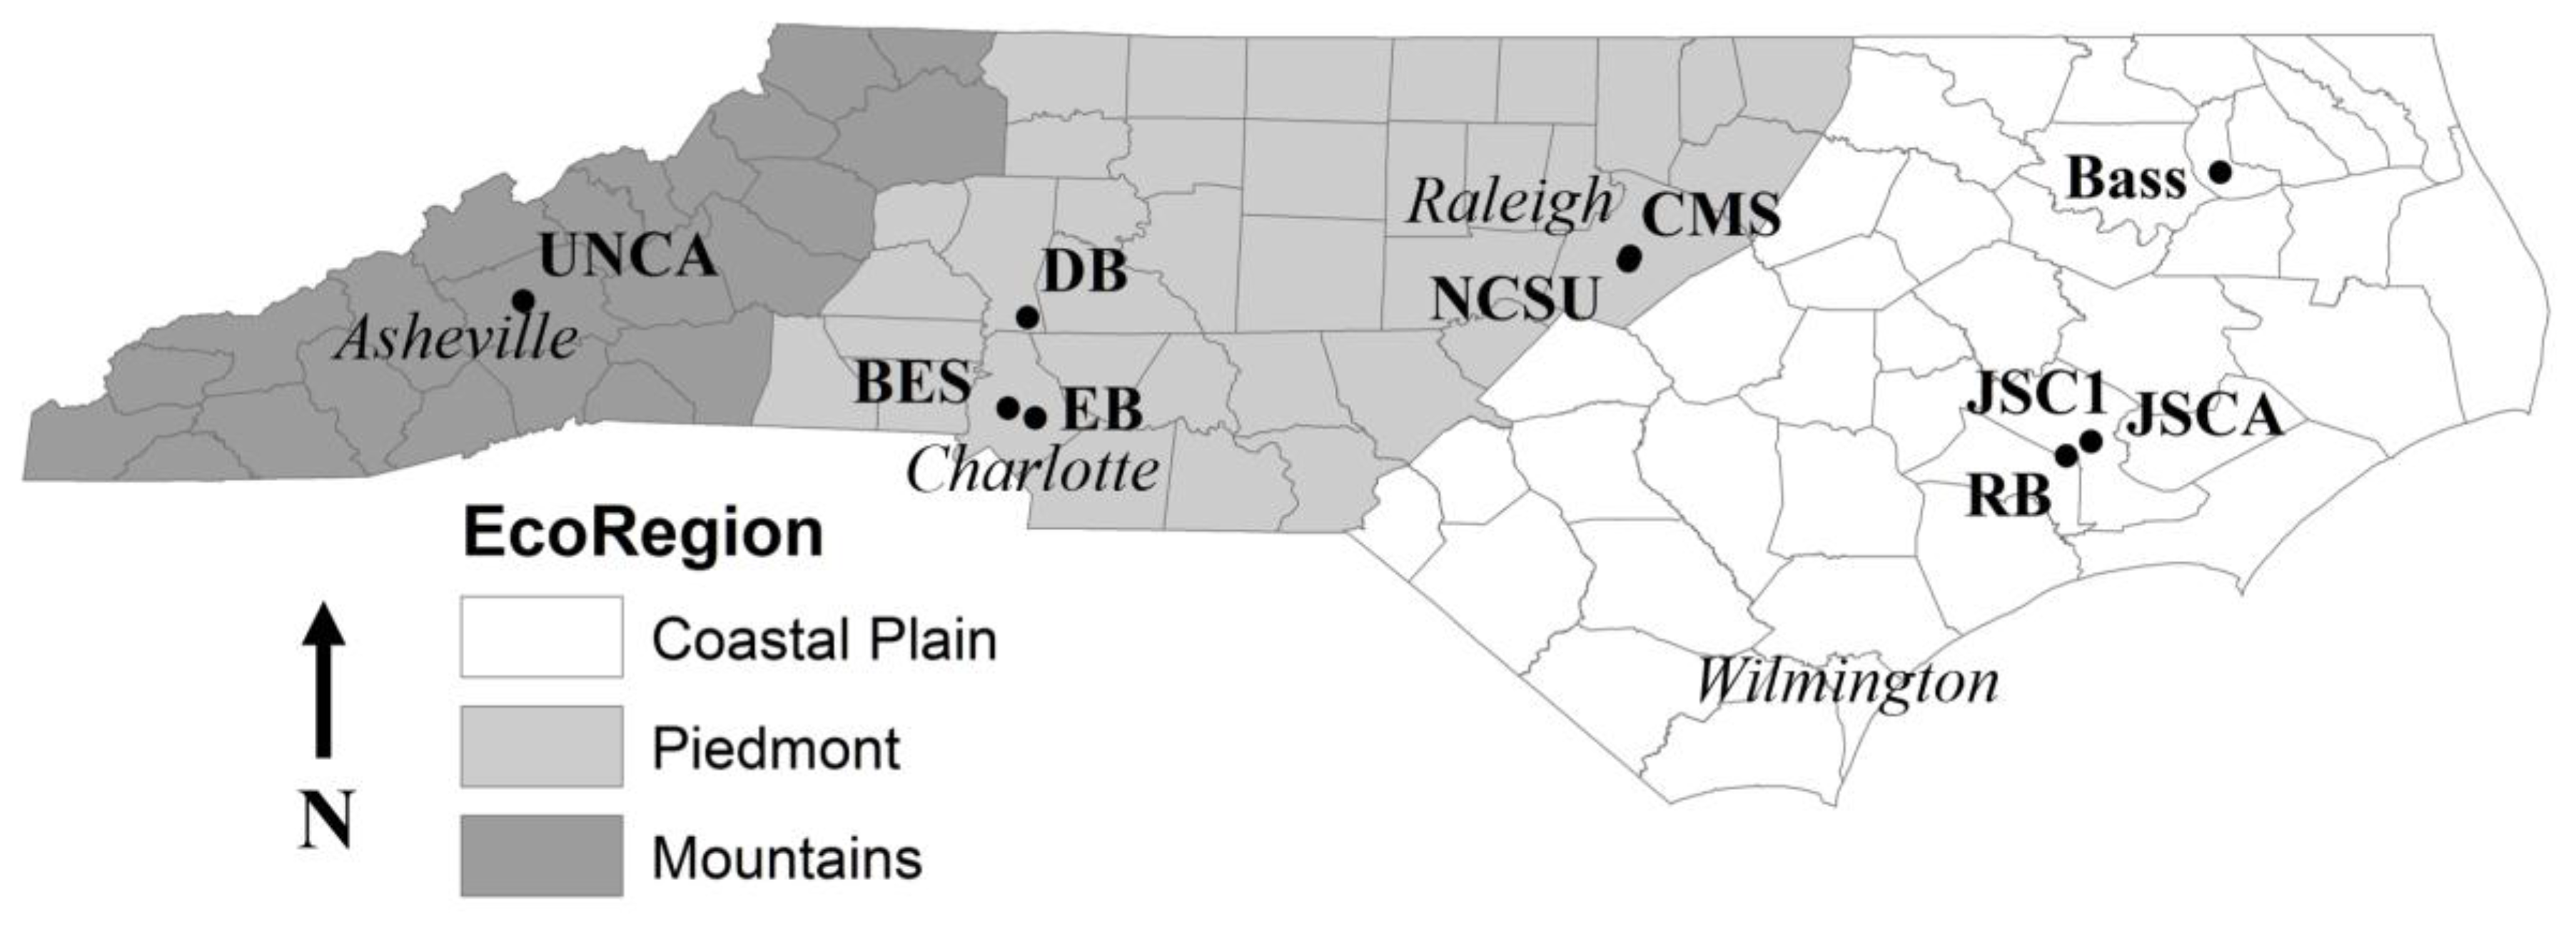 Water Free FullText Adapting The Relaxed TanksinSeries - Nc map nash us download data parcels